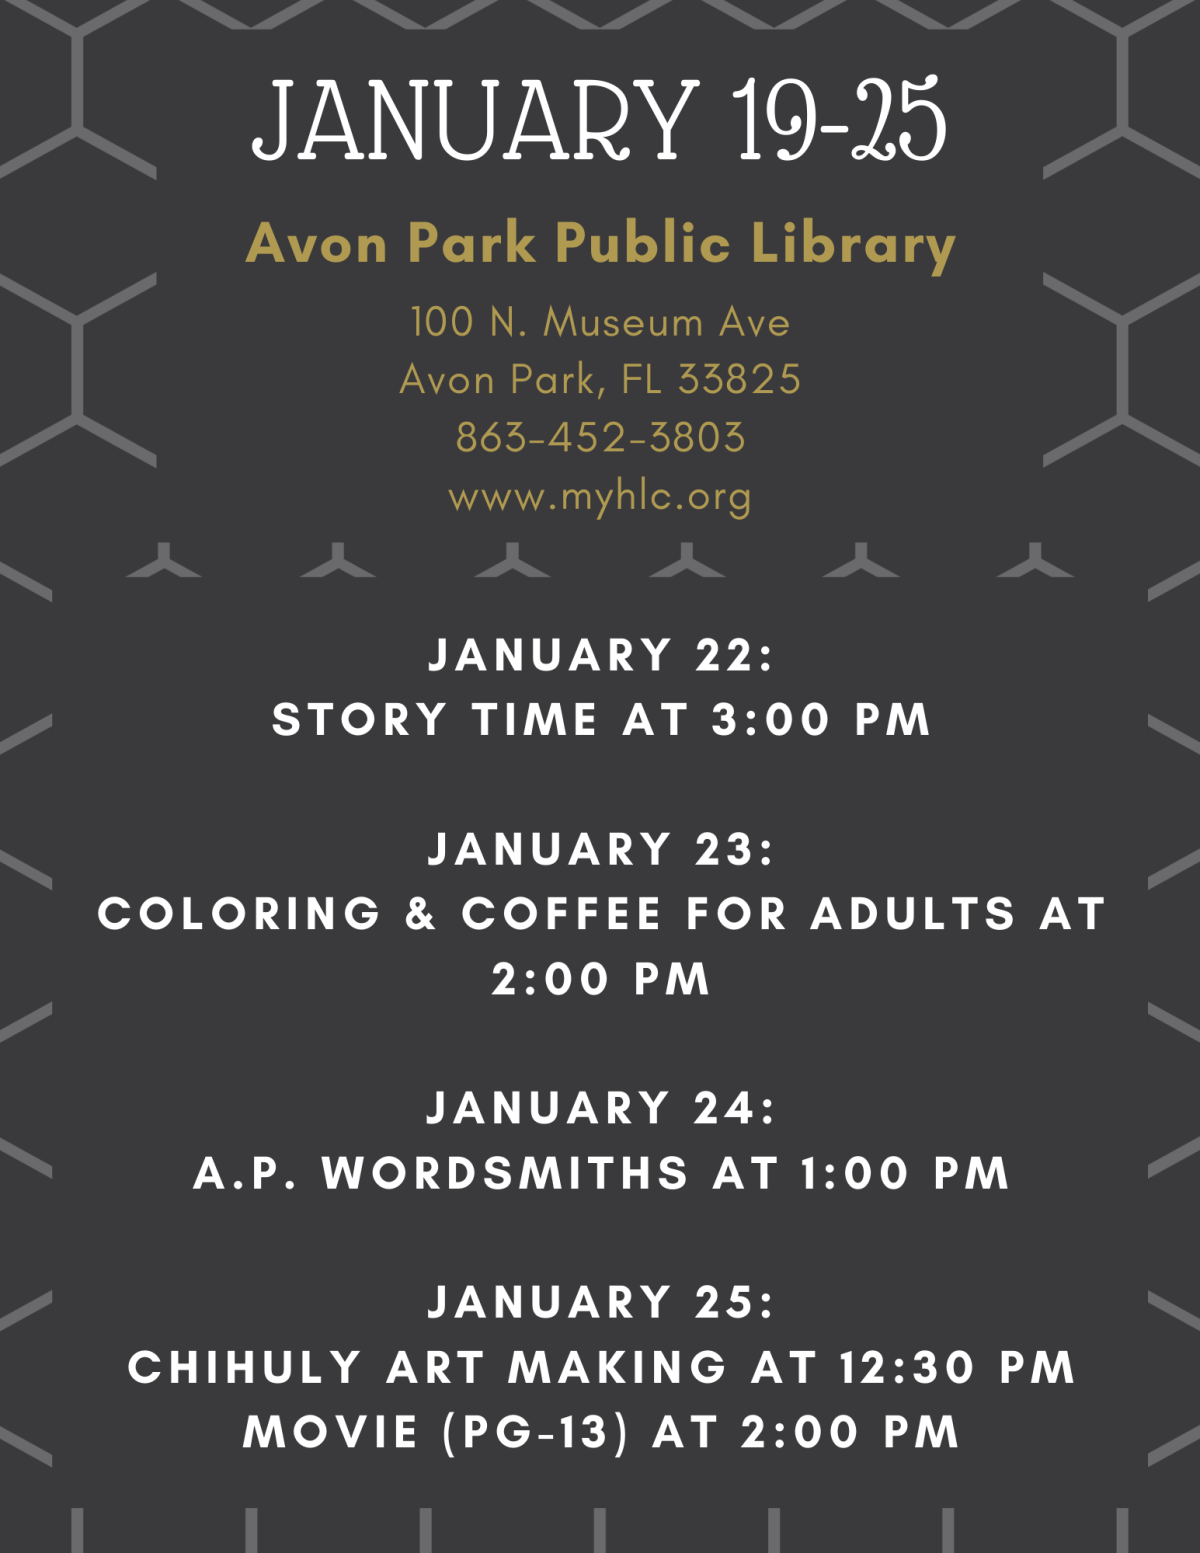 The events for January 19-25, 2020 at the Avon Park Public Library are as follows: January 22, 2020 at 3:00 PM will be story time. On January 23, 2020 at 2:00 PM will be coloring and coffee for adults. On January 24, 2020 at 1:00 PM the Avon Park Wordsmiths will meet. On January 25, 2020 at 12:30 PM we will have a Chihuly Art Making event and will show a movie (PG-13) at 2:00 PM.